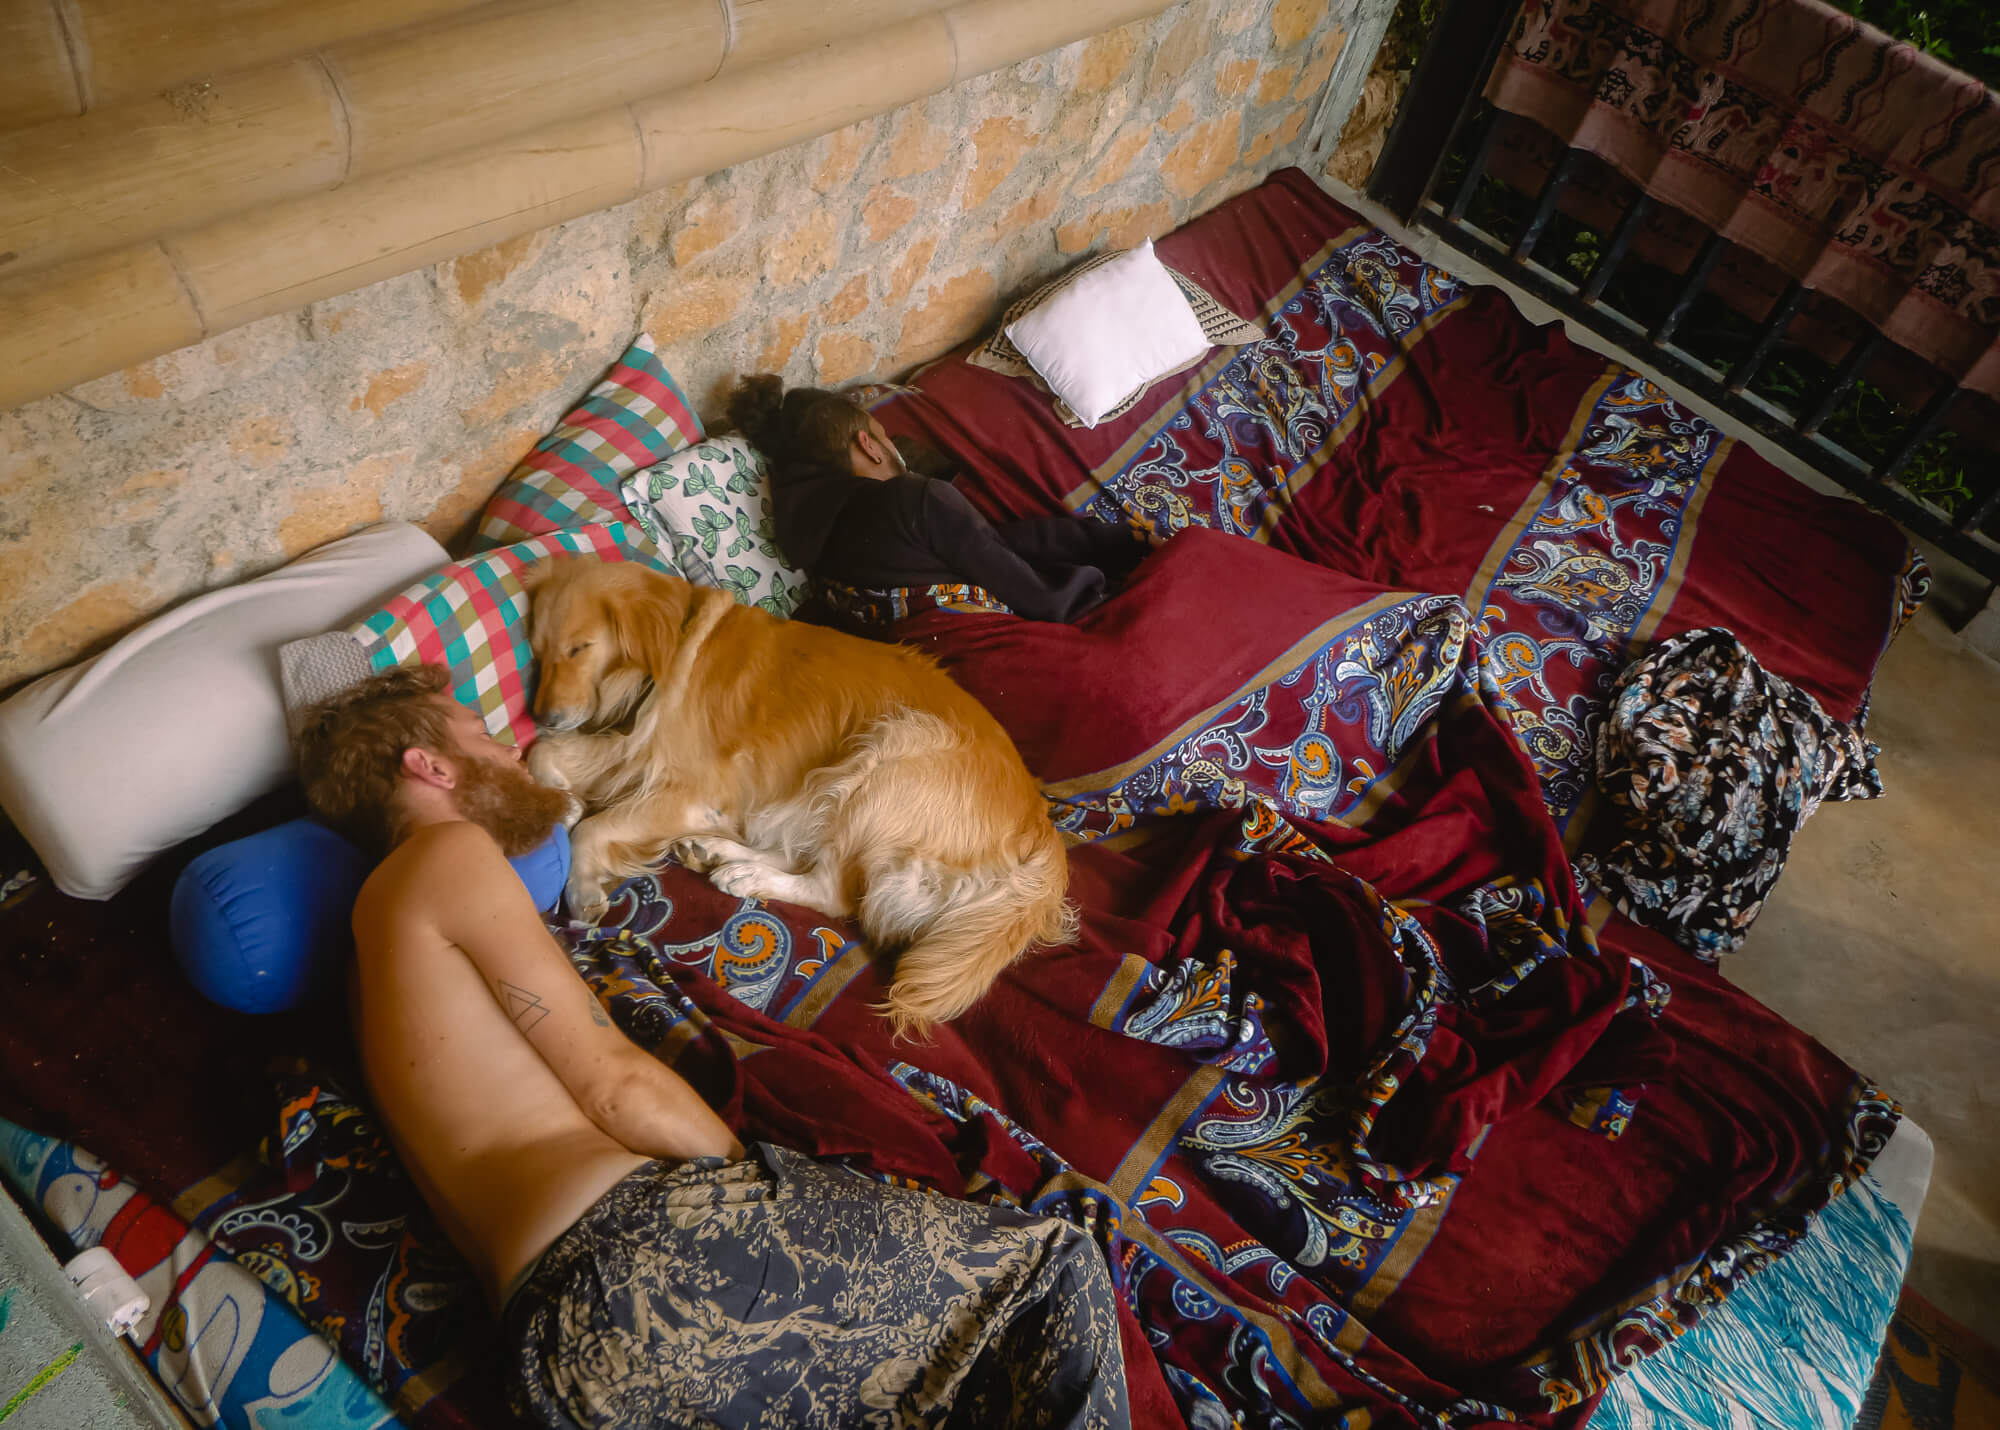 The queen of the best hostel in Sri Lanka asleep with her king